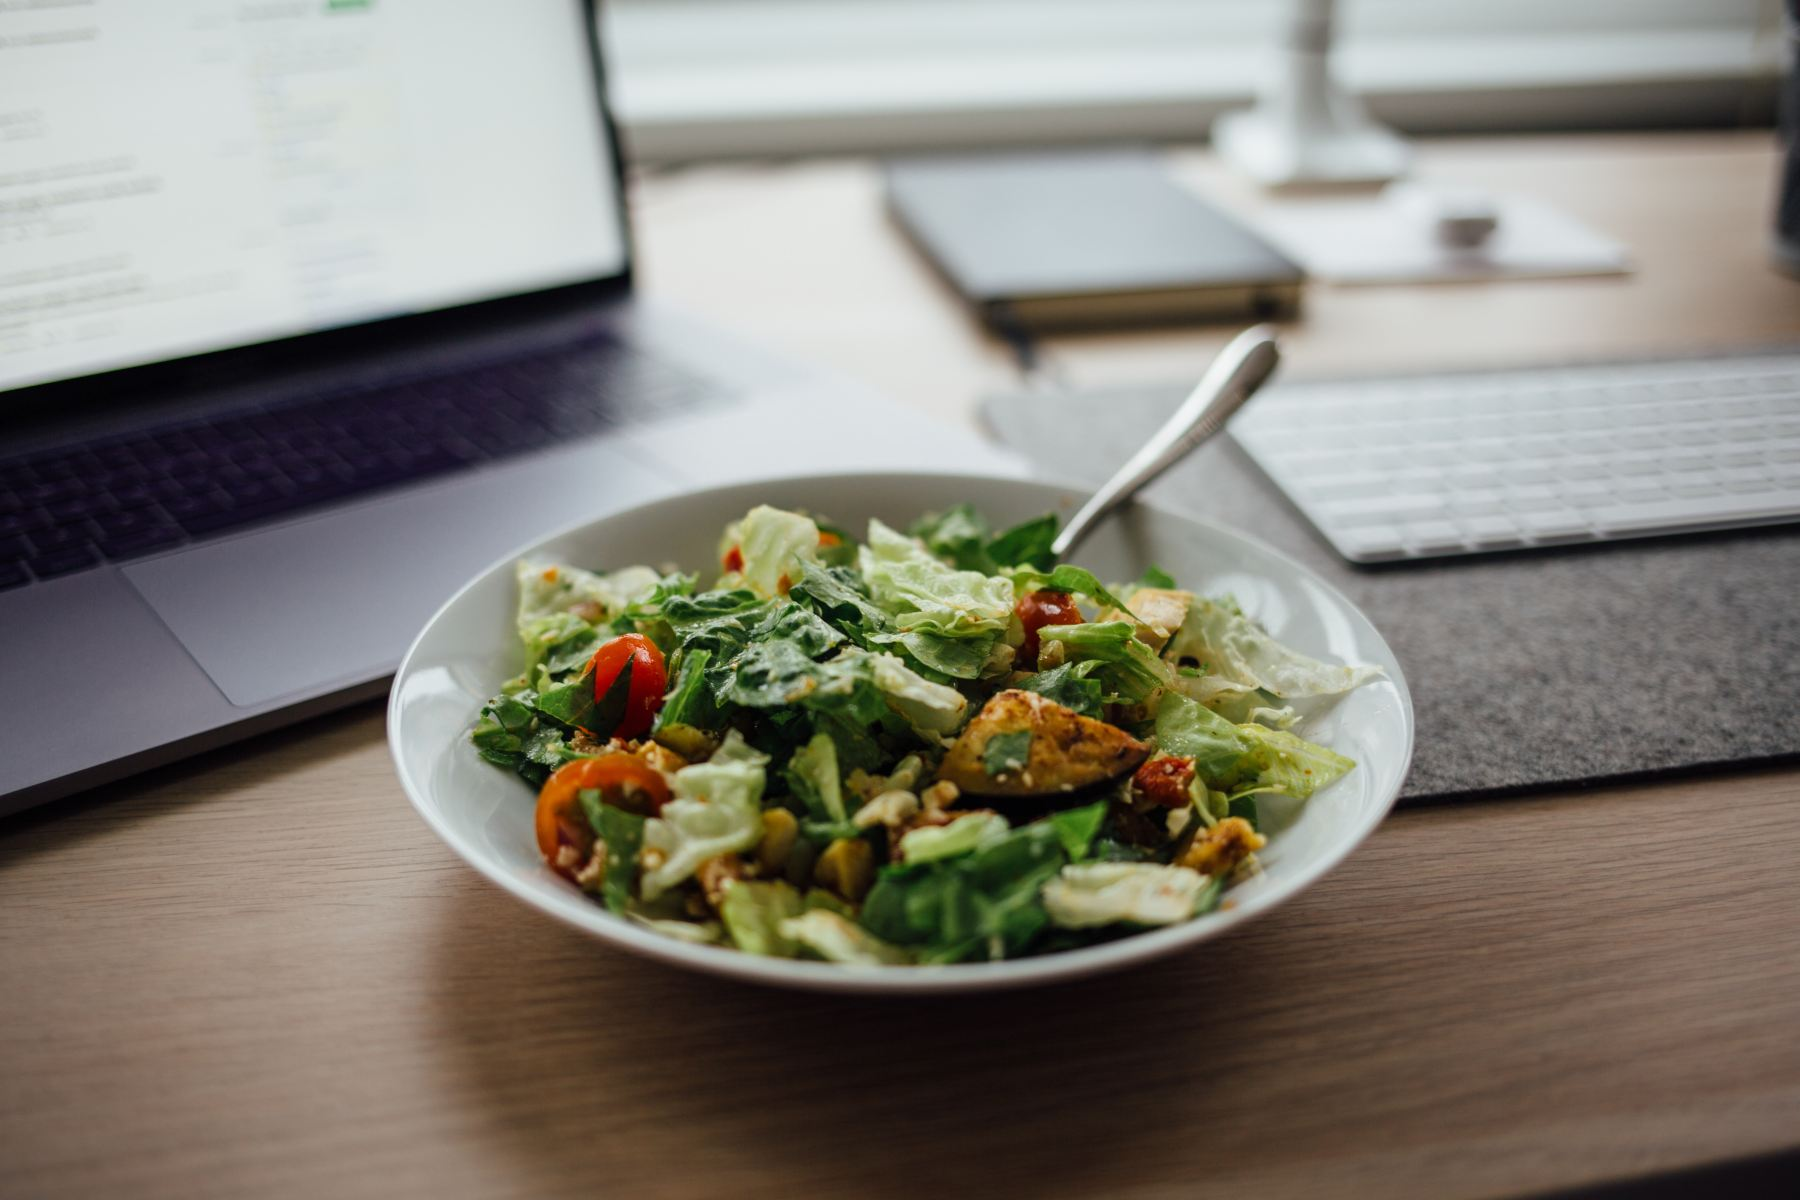 Actually, 11 a.m. is the perfect time to enjoy a sad desk salad.